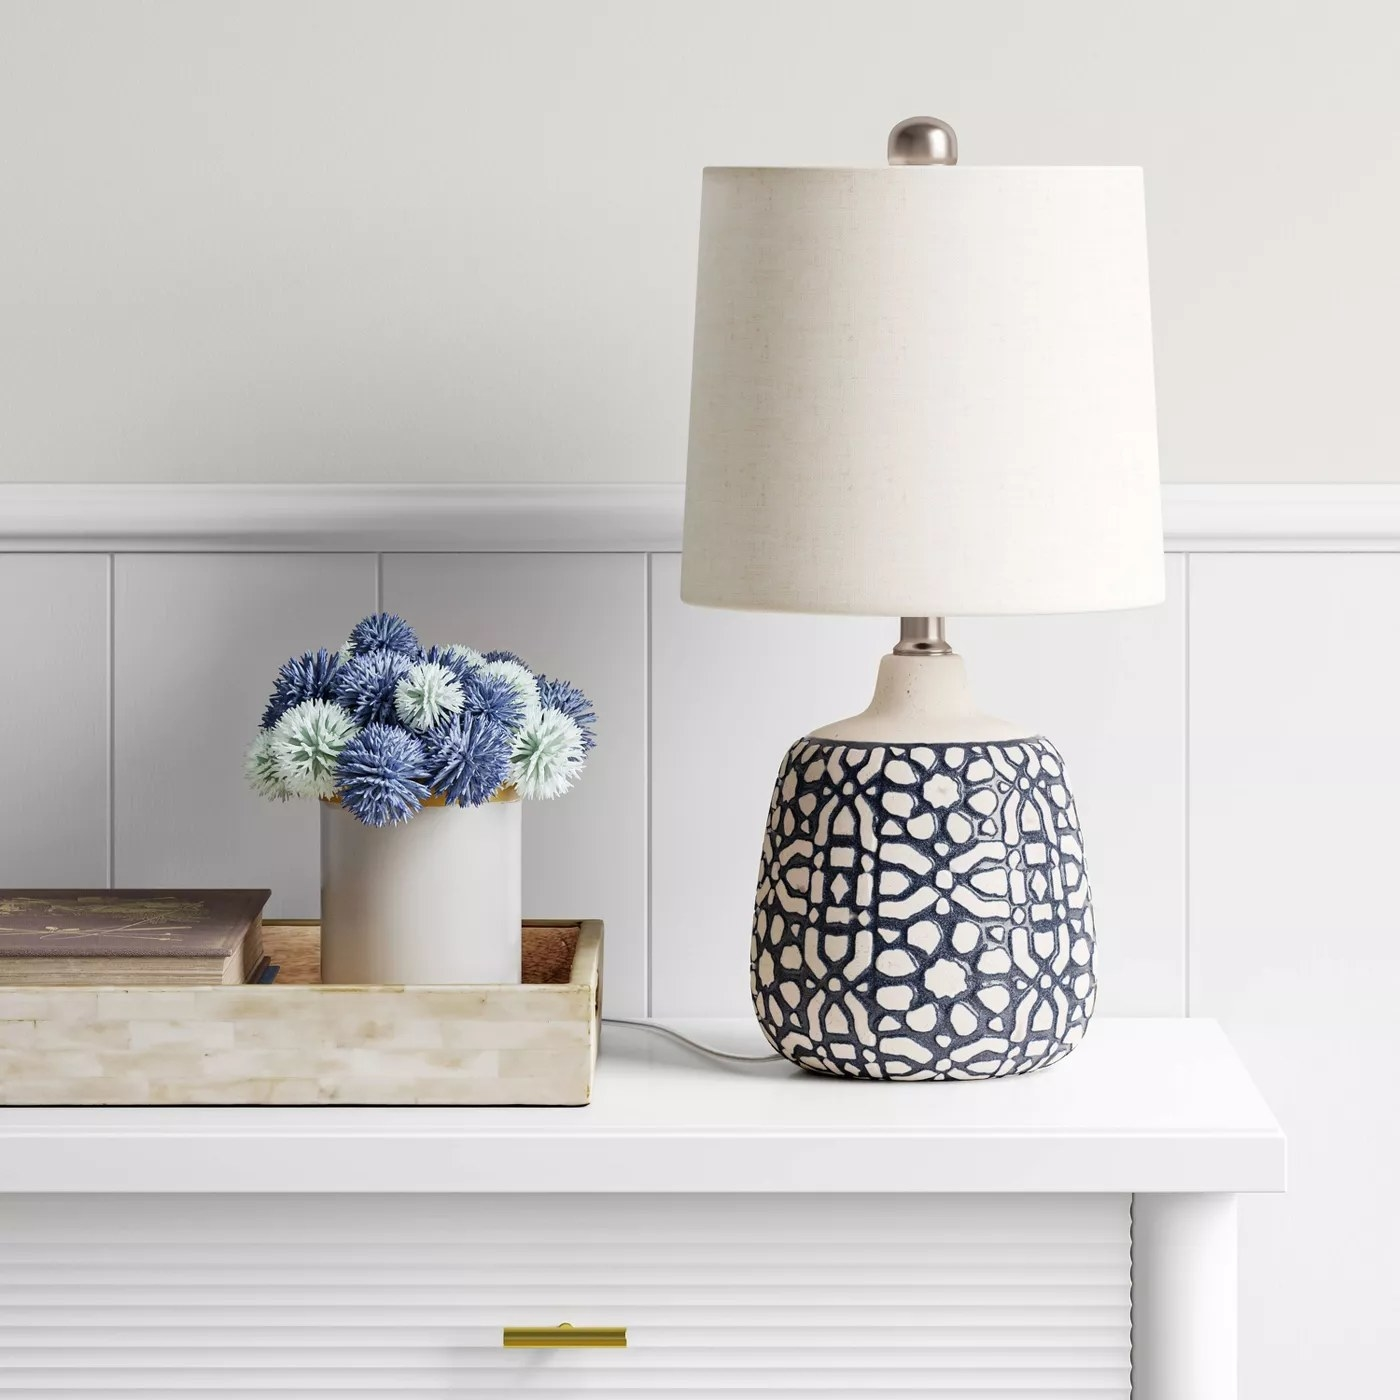 The lamp with a white shade and an intricate white and blue base on a table